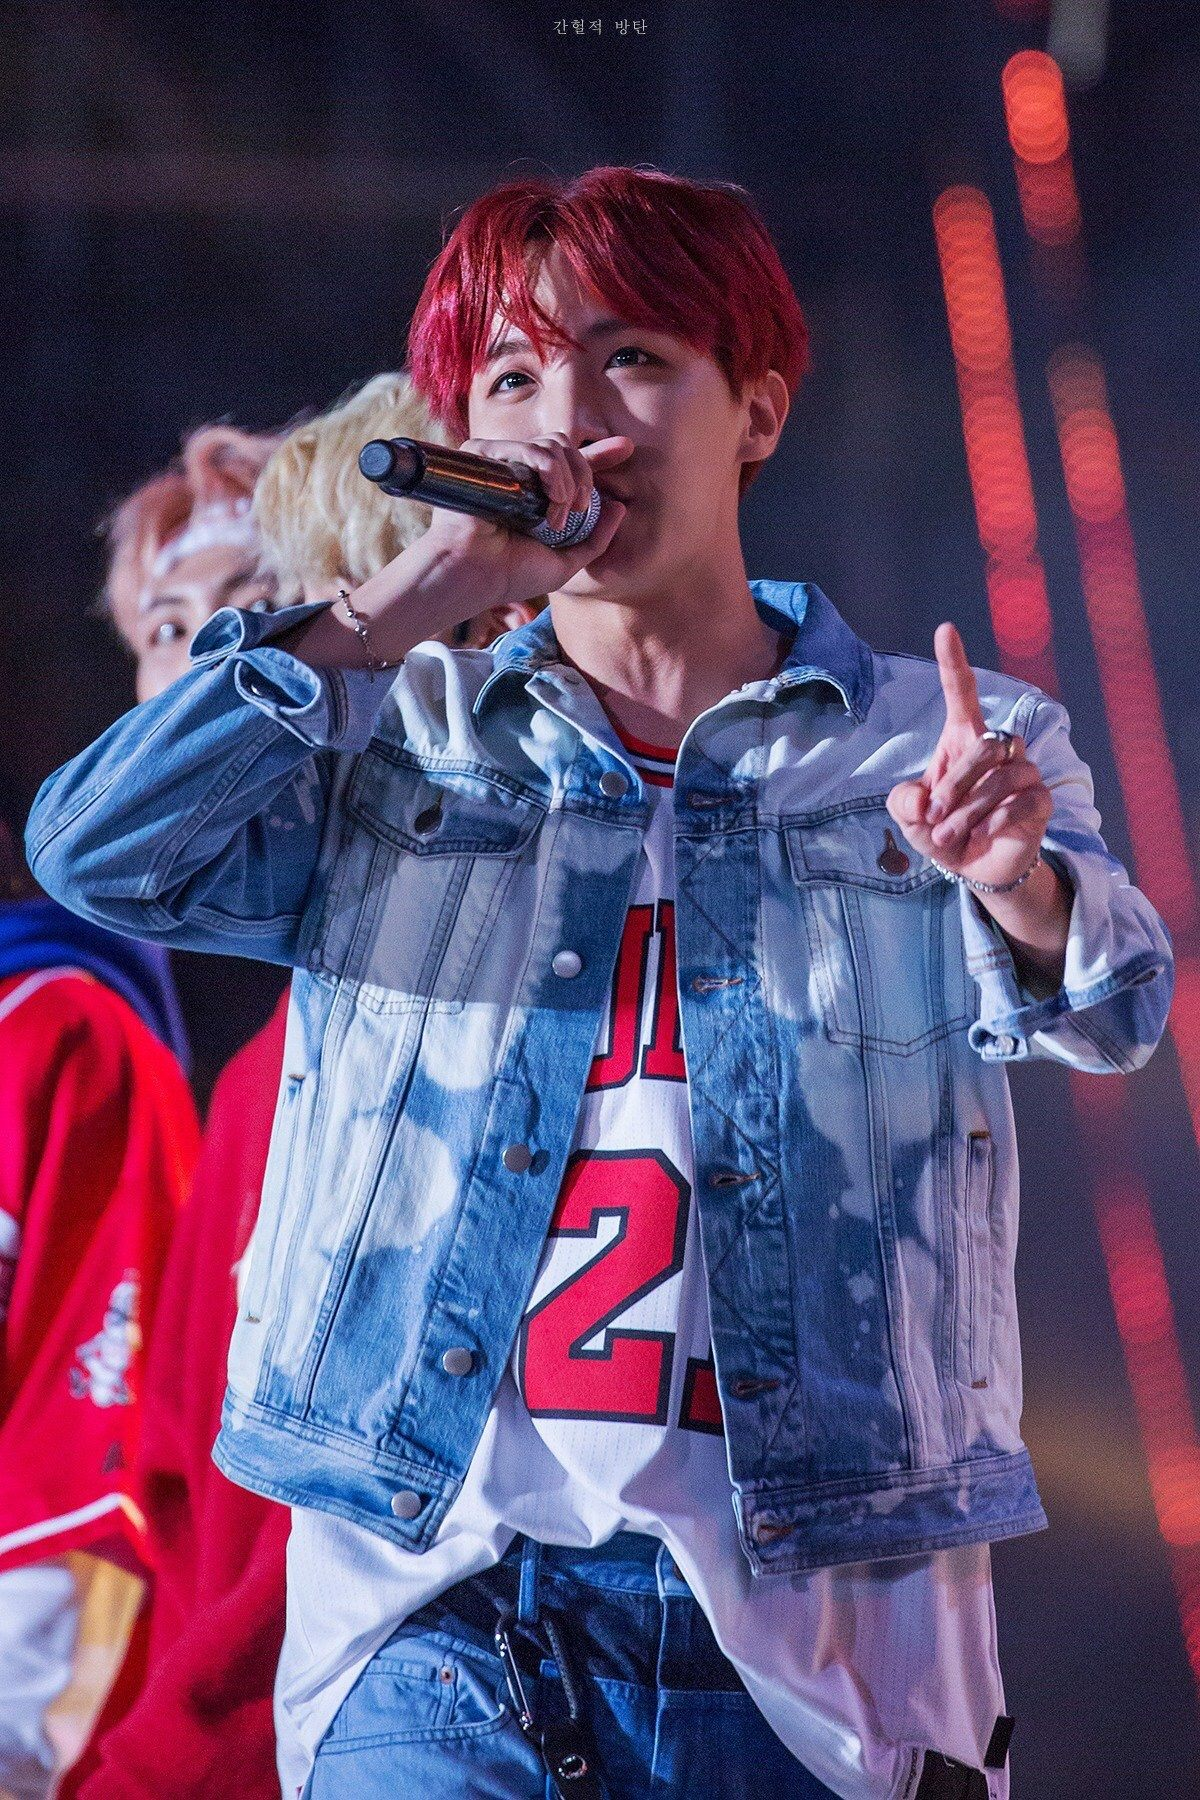 Why did they try to kick J-Hope out of BTS? - Quora